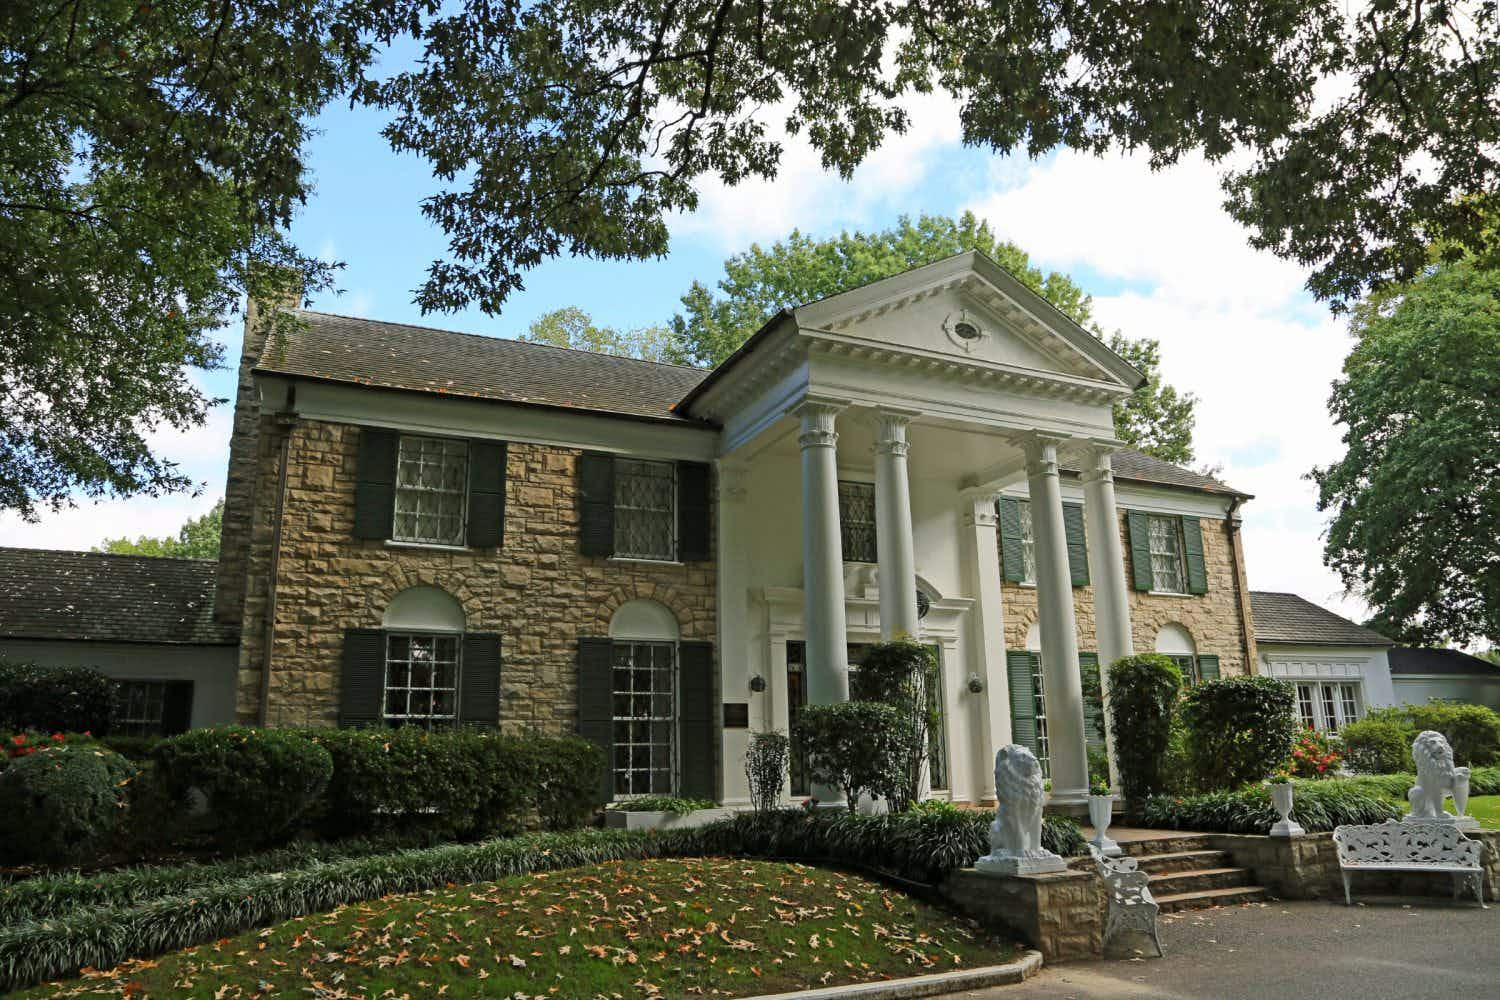 Music rings out again at Elvis Presley's Graceland with a packed series of concerts